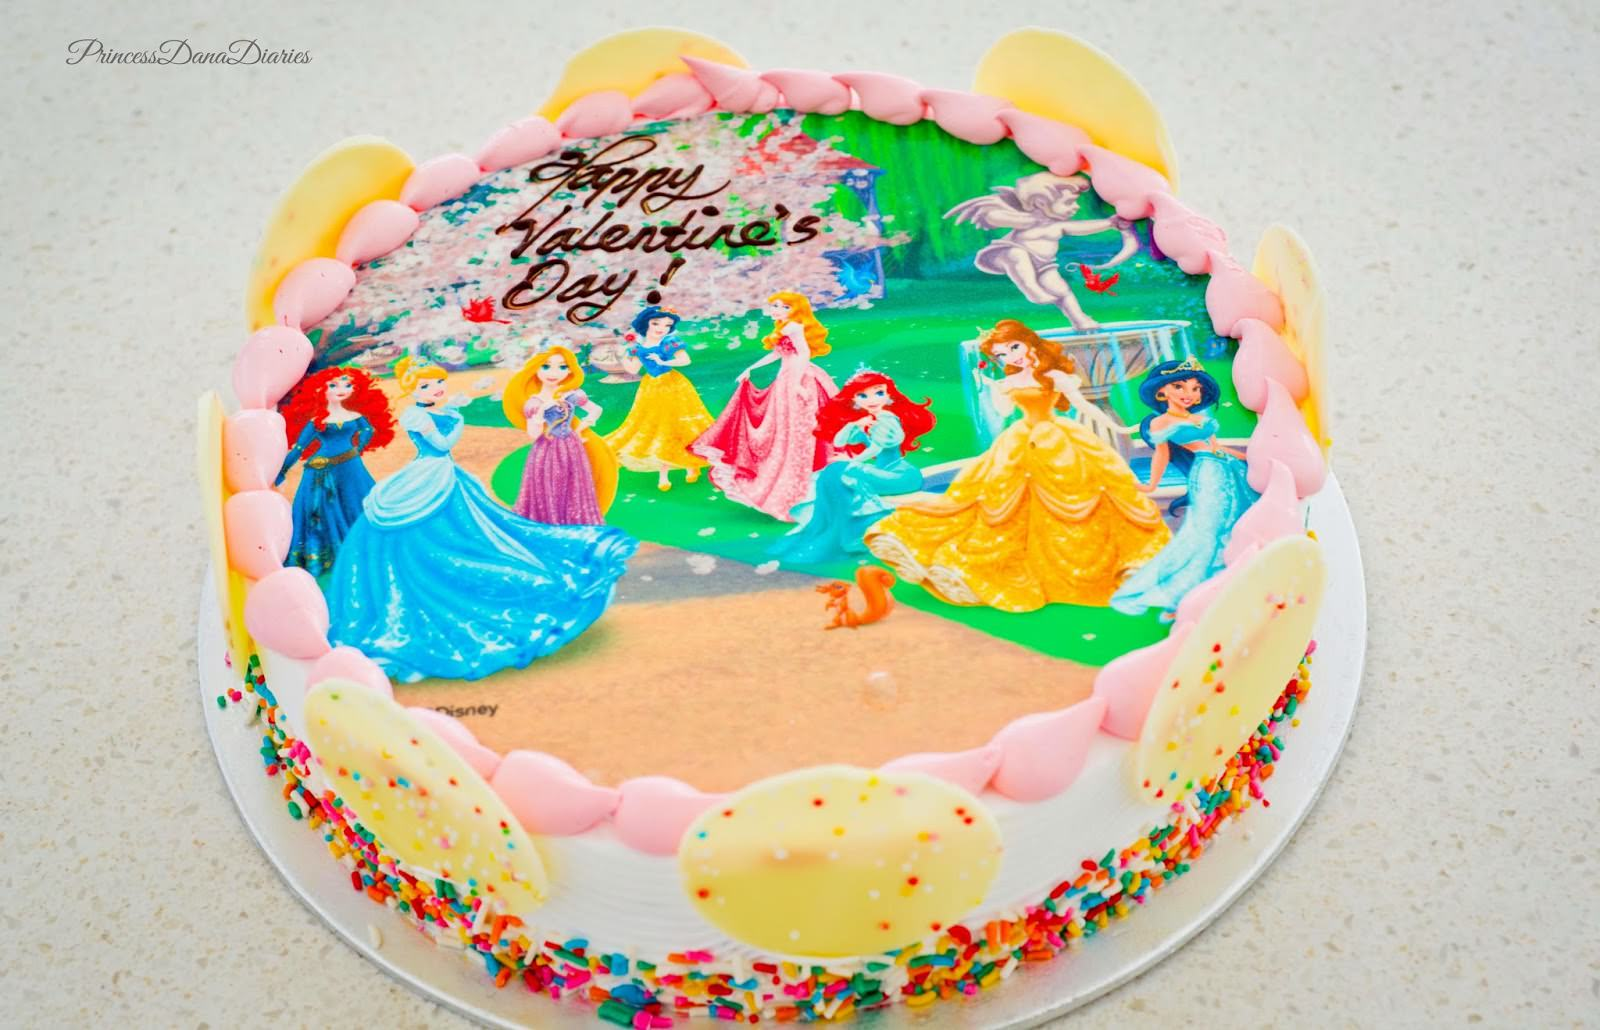 Goldilocks Cake Cars Design : A Royal Celebration with Swensen s Disney Princess Cakes ...